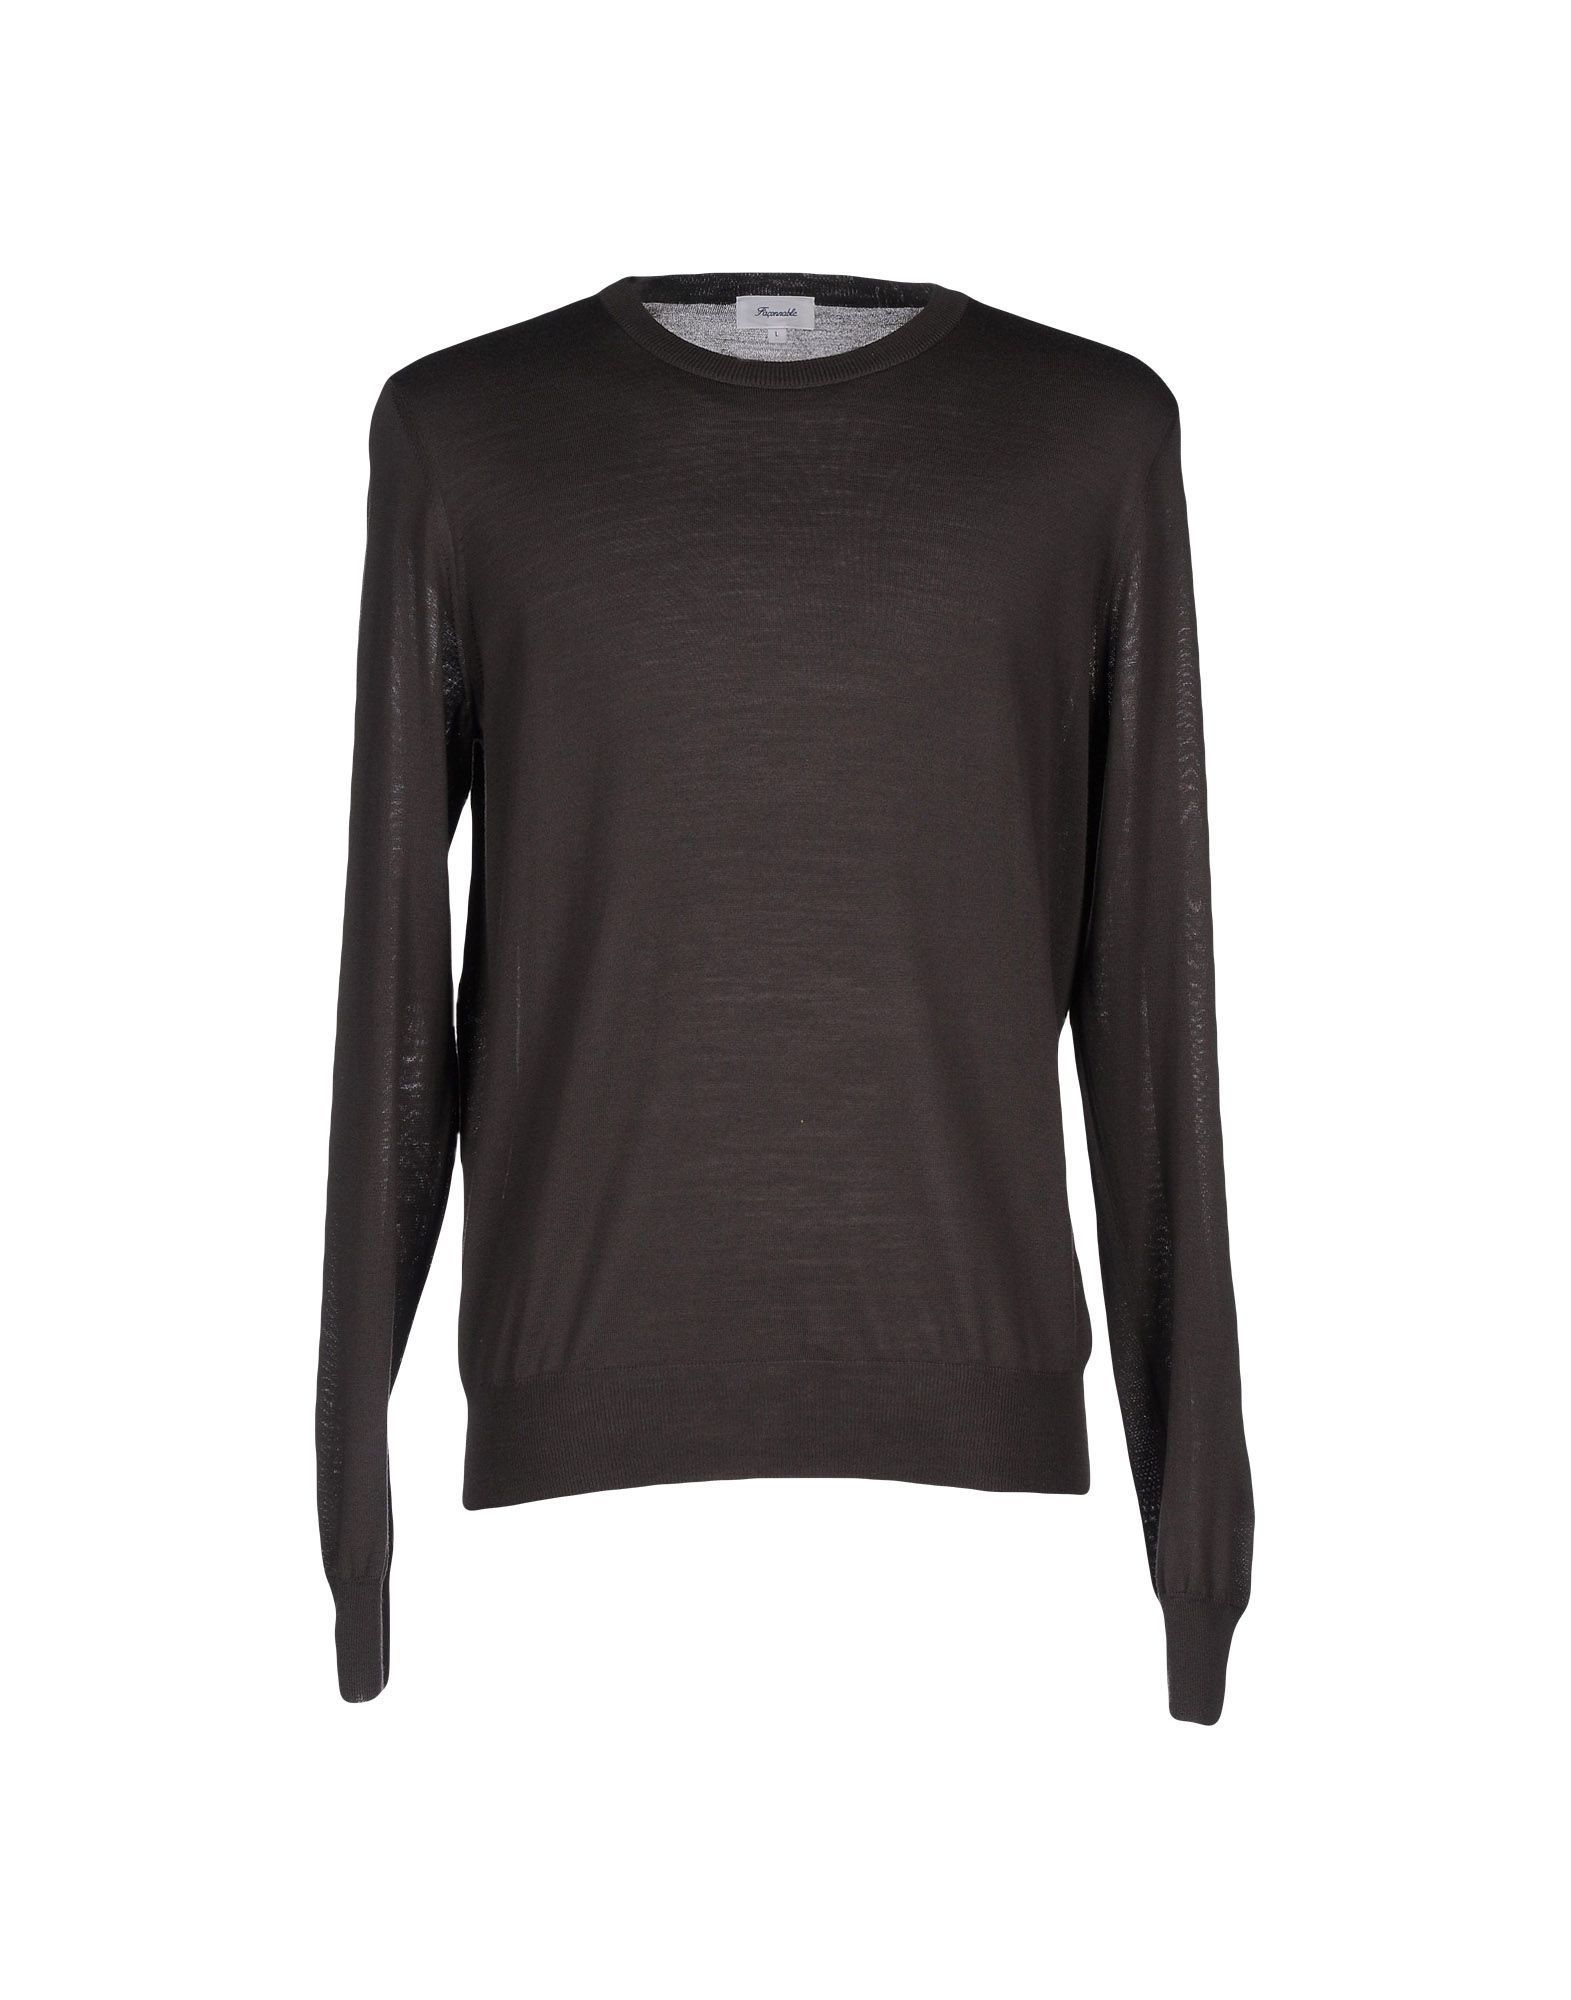 FAÇONNABLE Sweater in Dark Brown